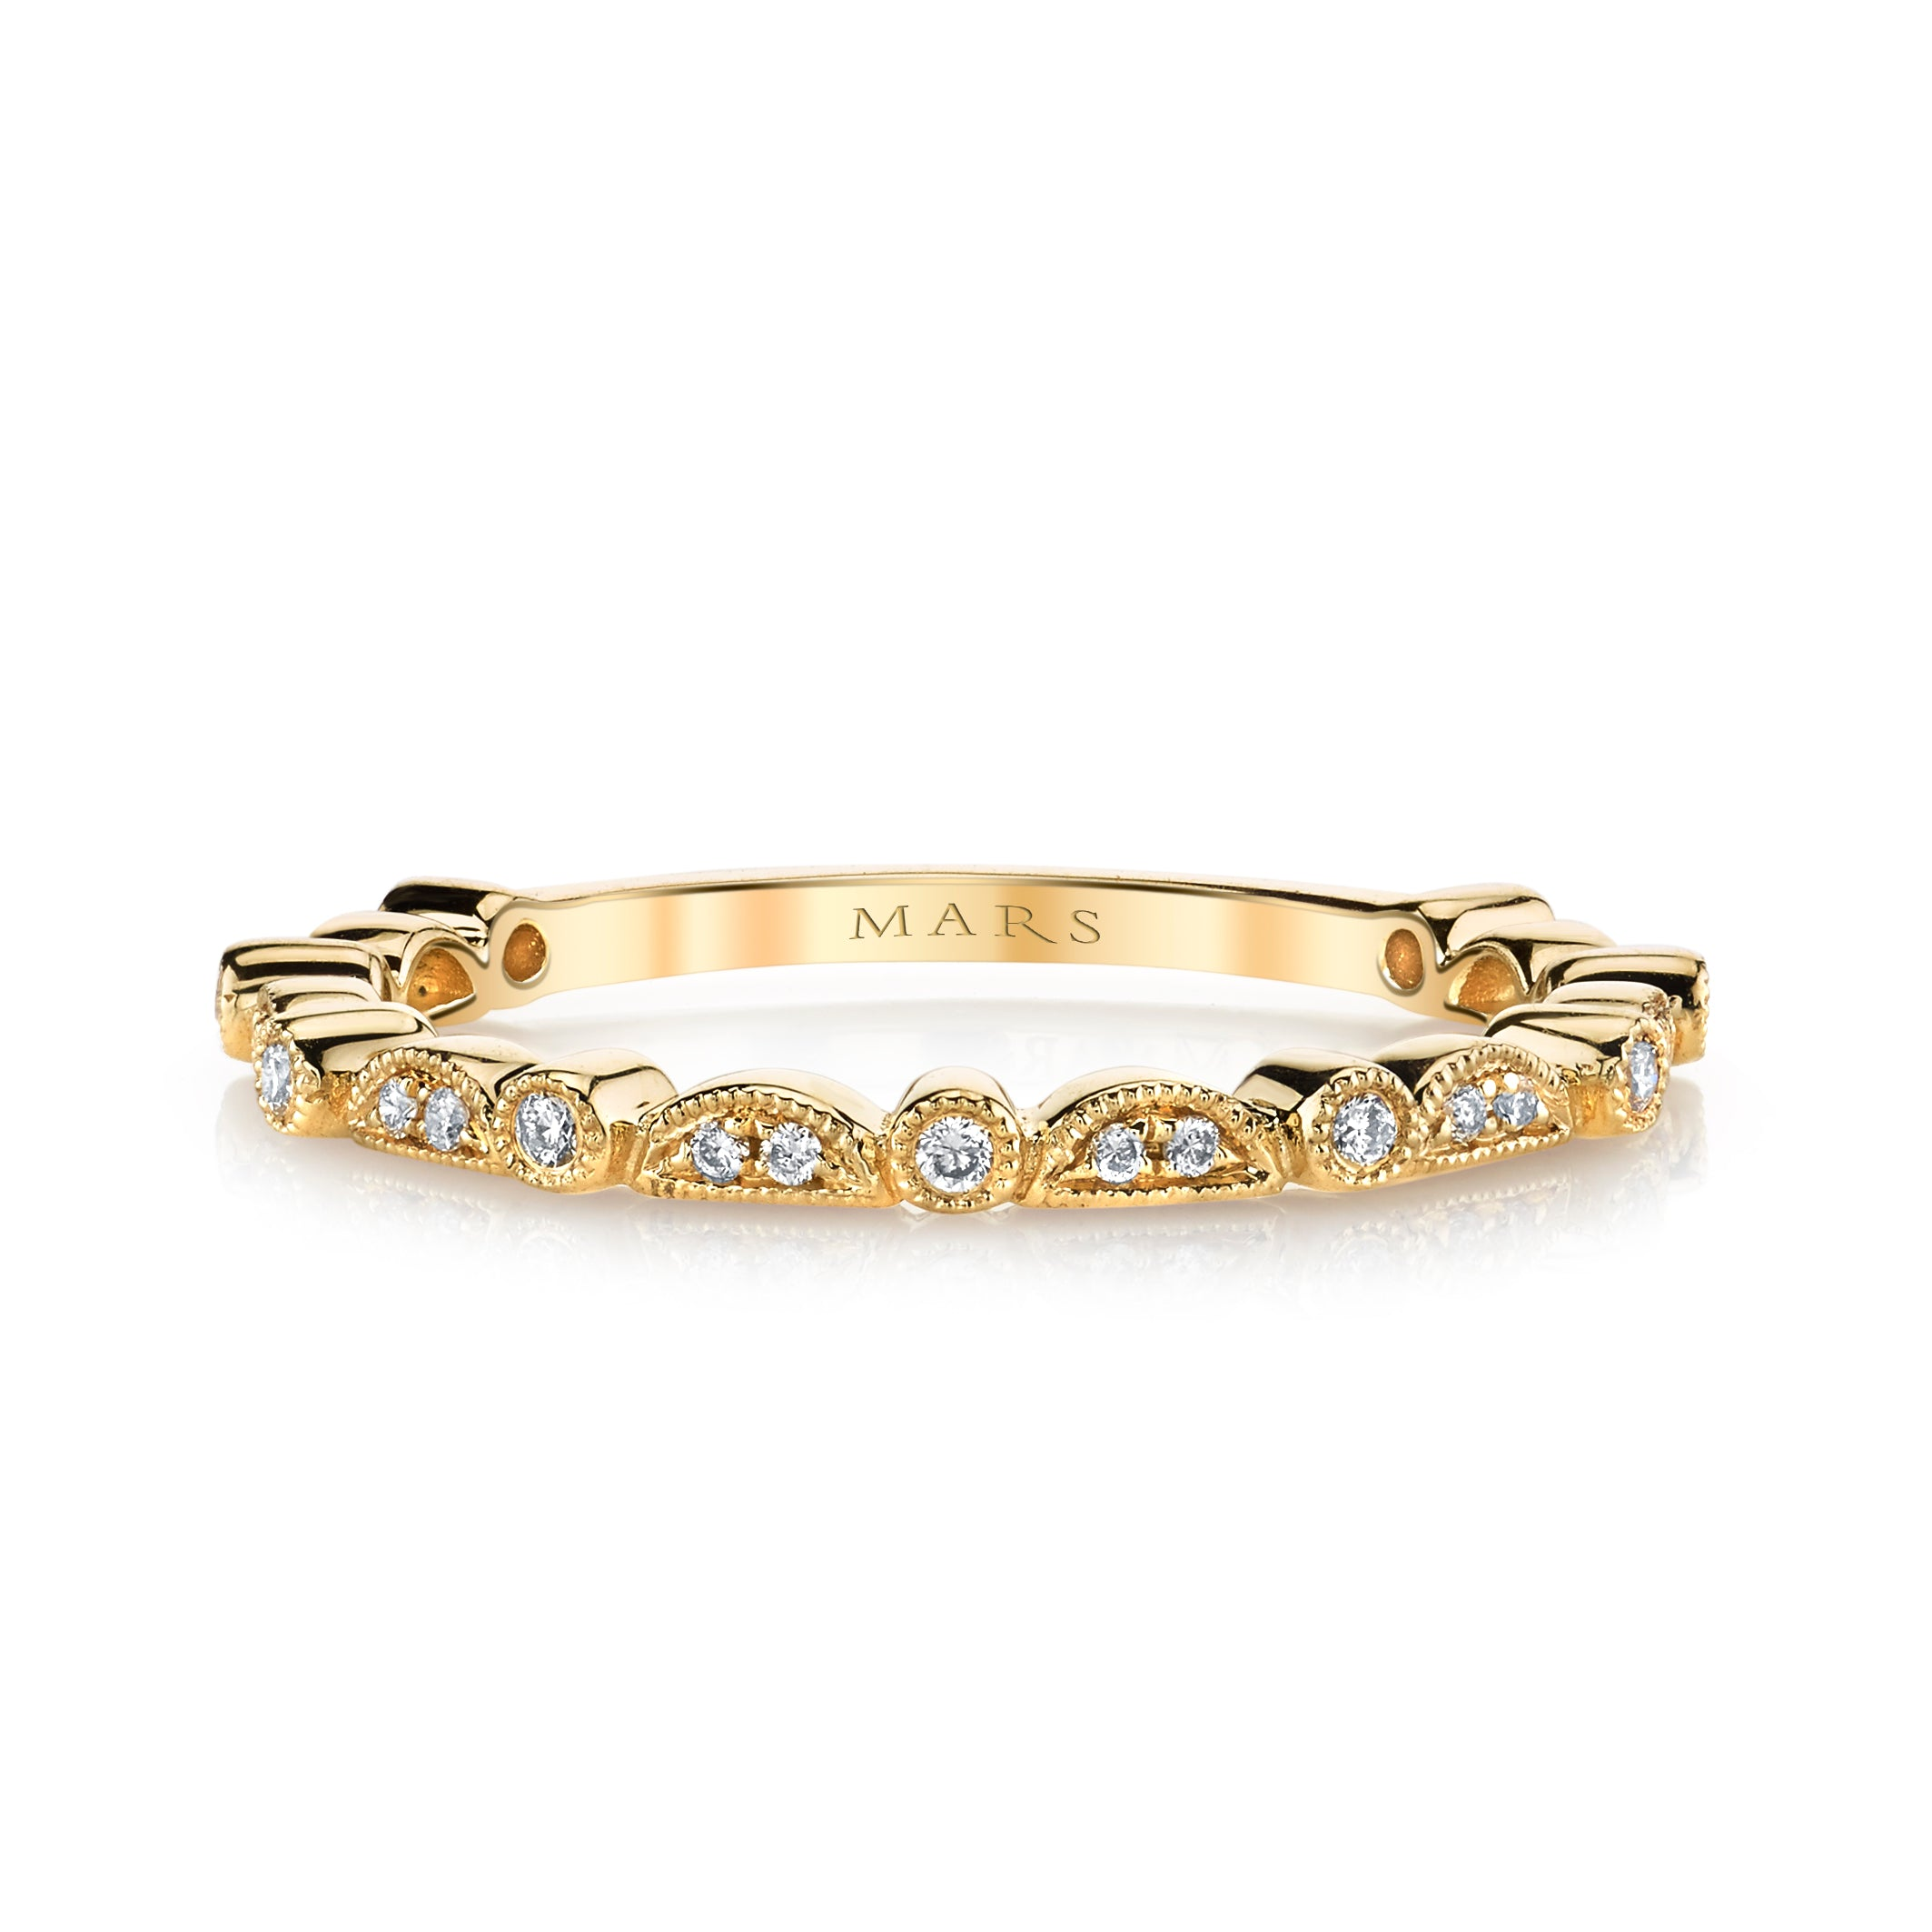 Mars Jewelry 14K Yellow Gold Stackable Band w/ Bezel Set Diamonds 26605